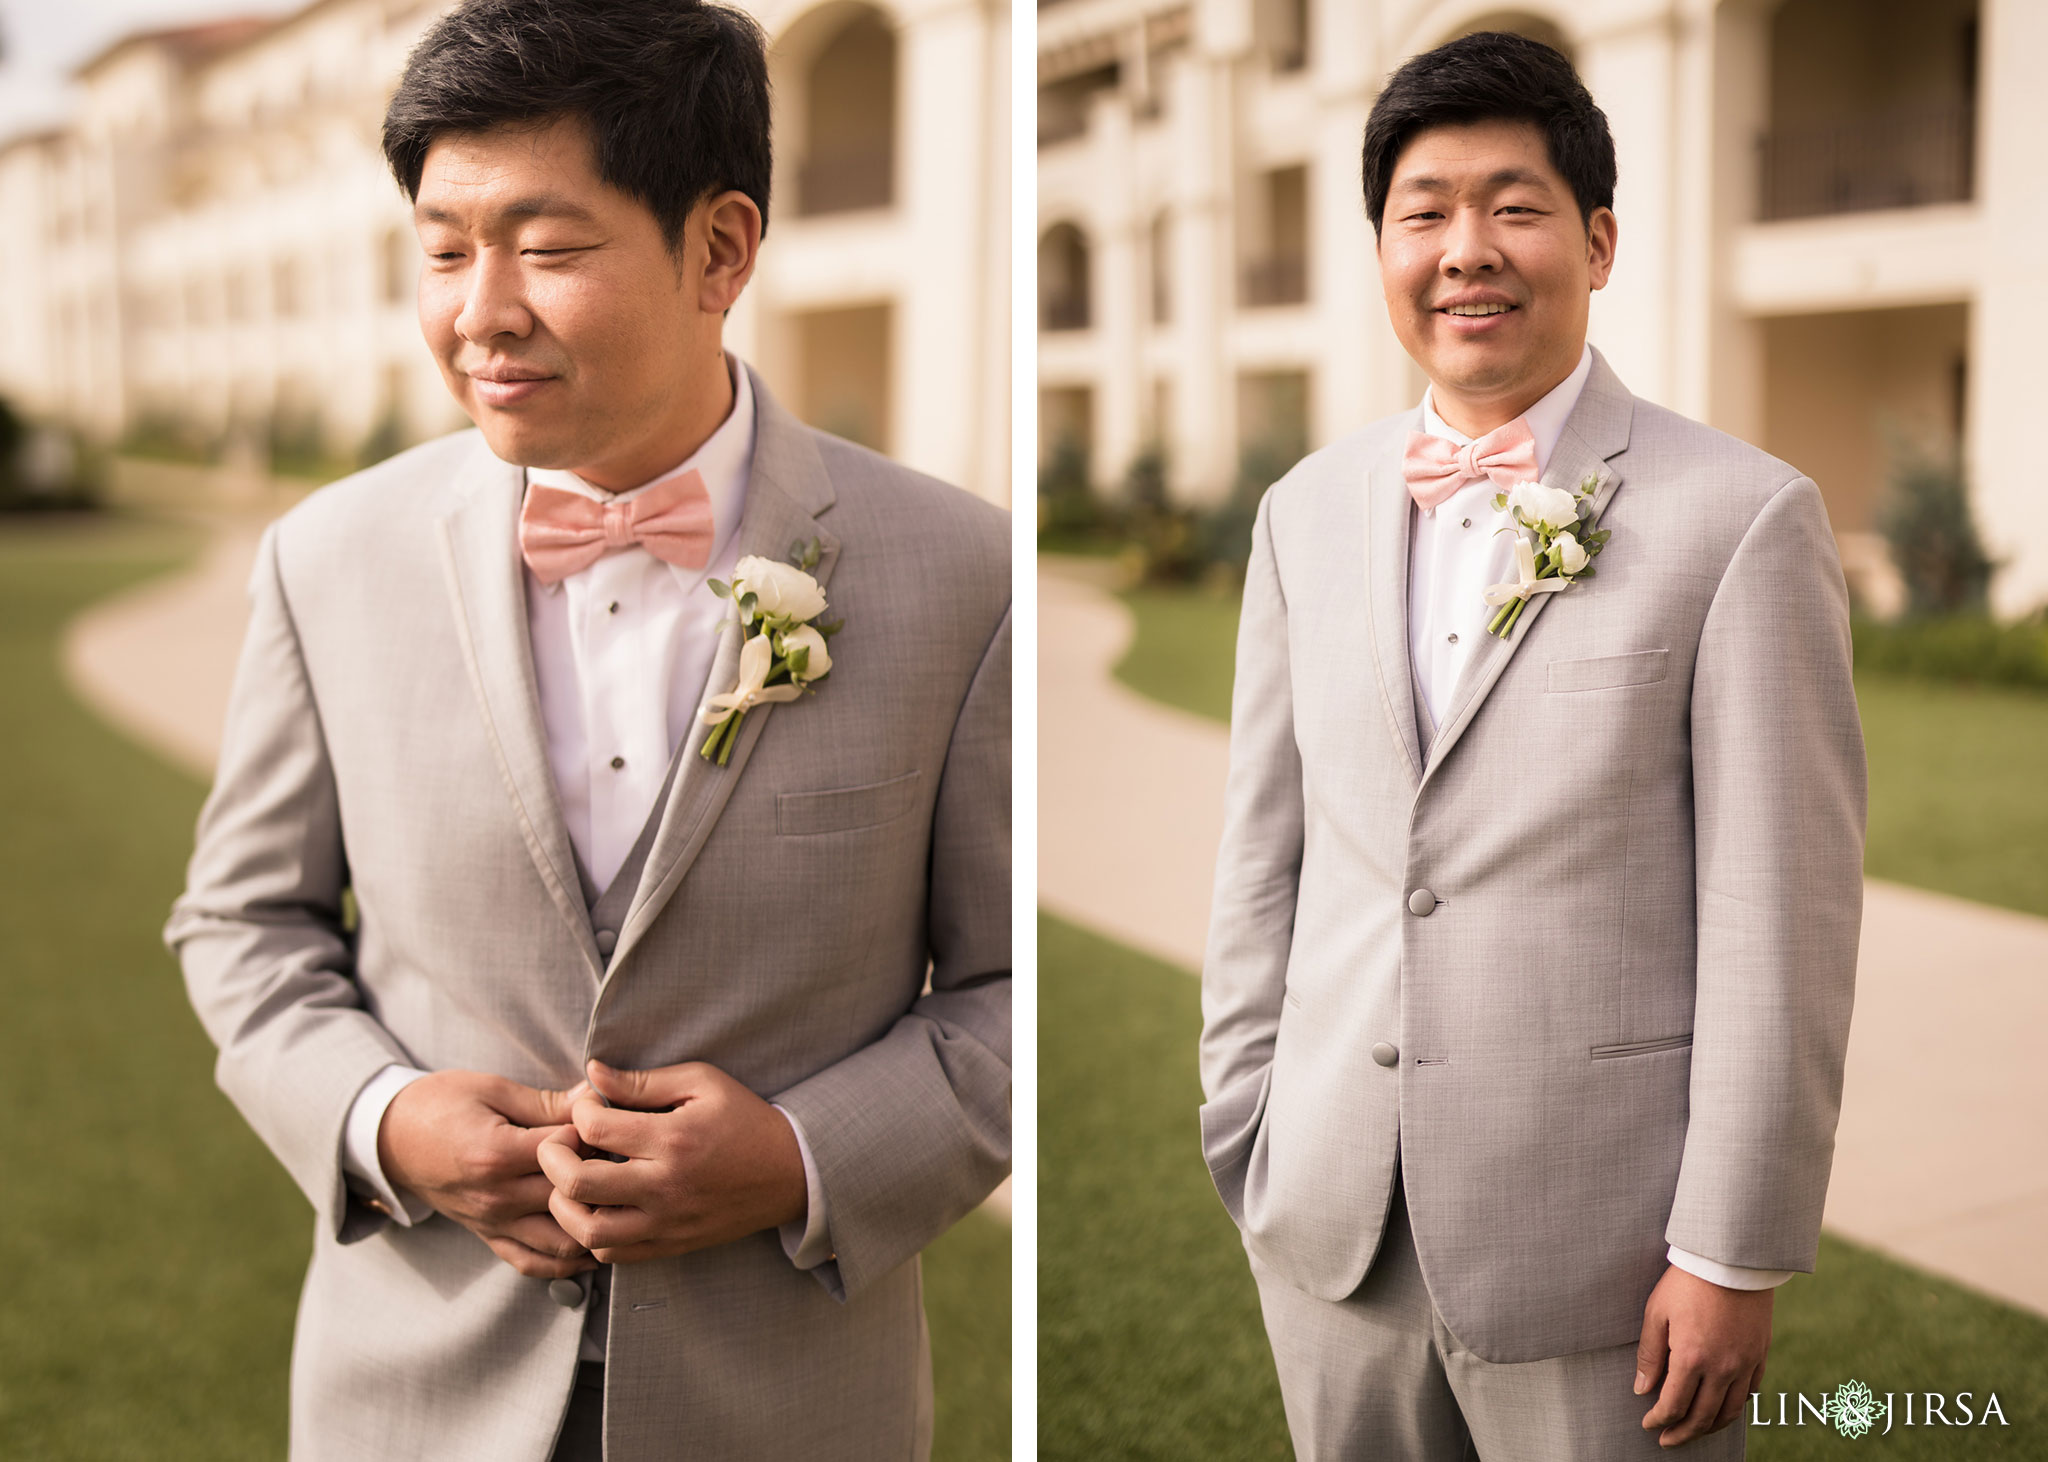 10 monarch beach resort groom wedding photography